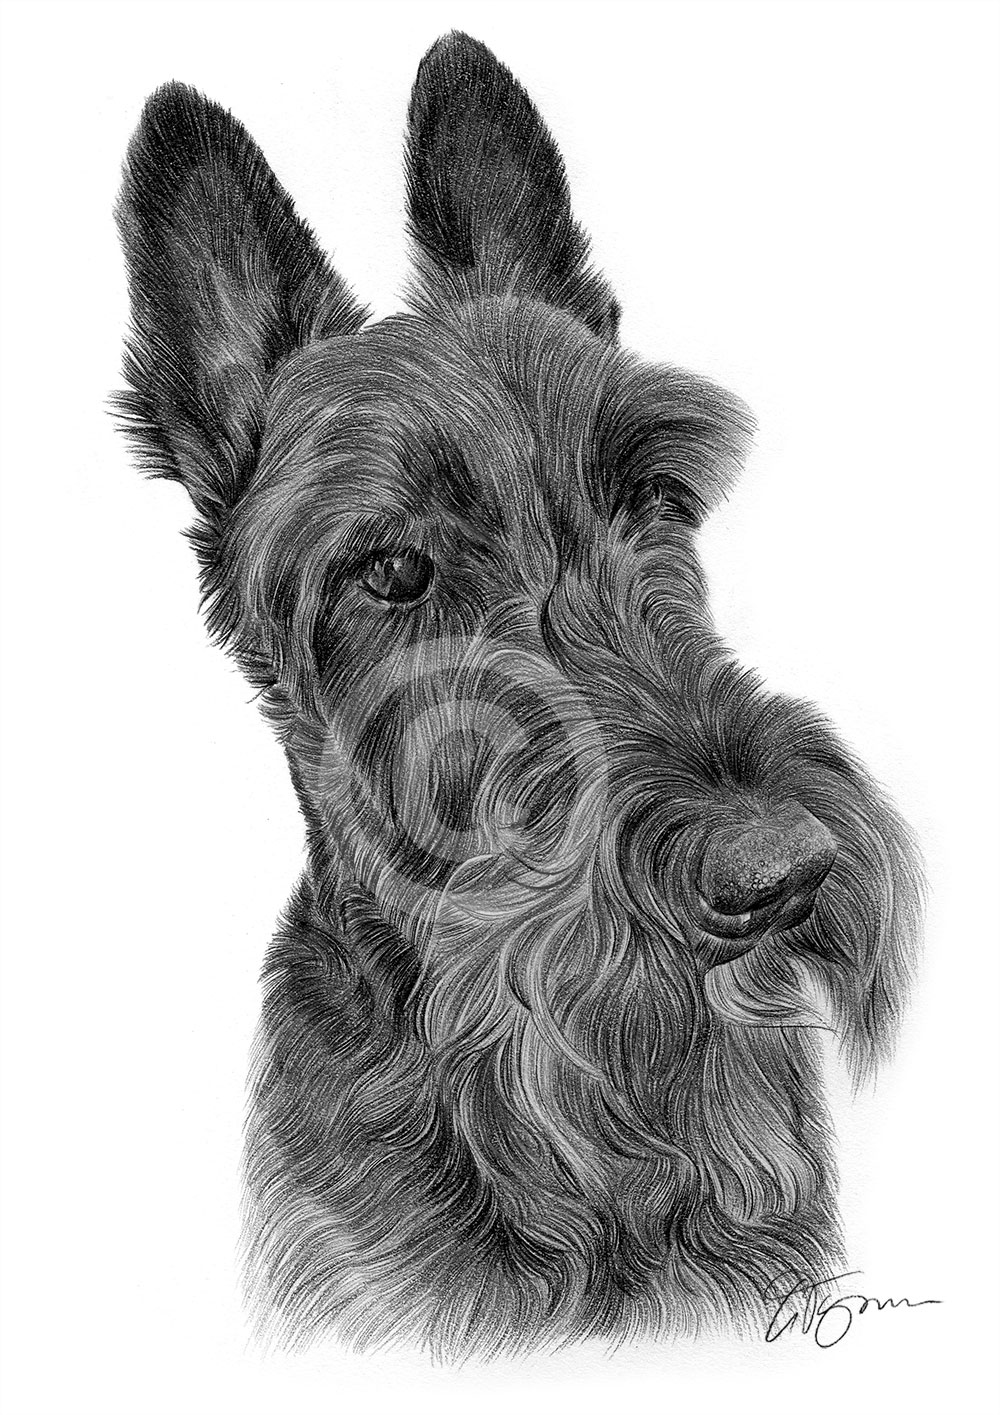 Pencil Drawing Of A Scotty Dog By Artist Gary Tymon